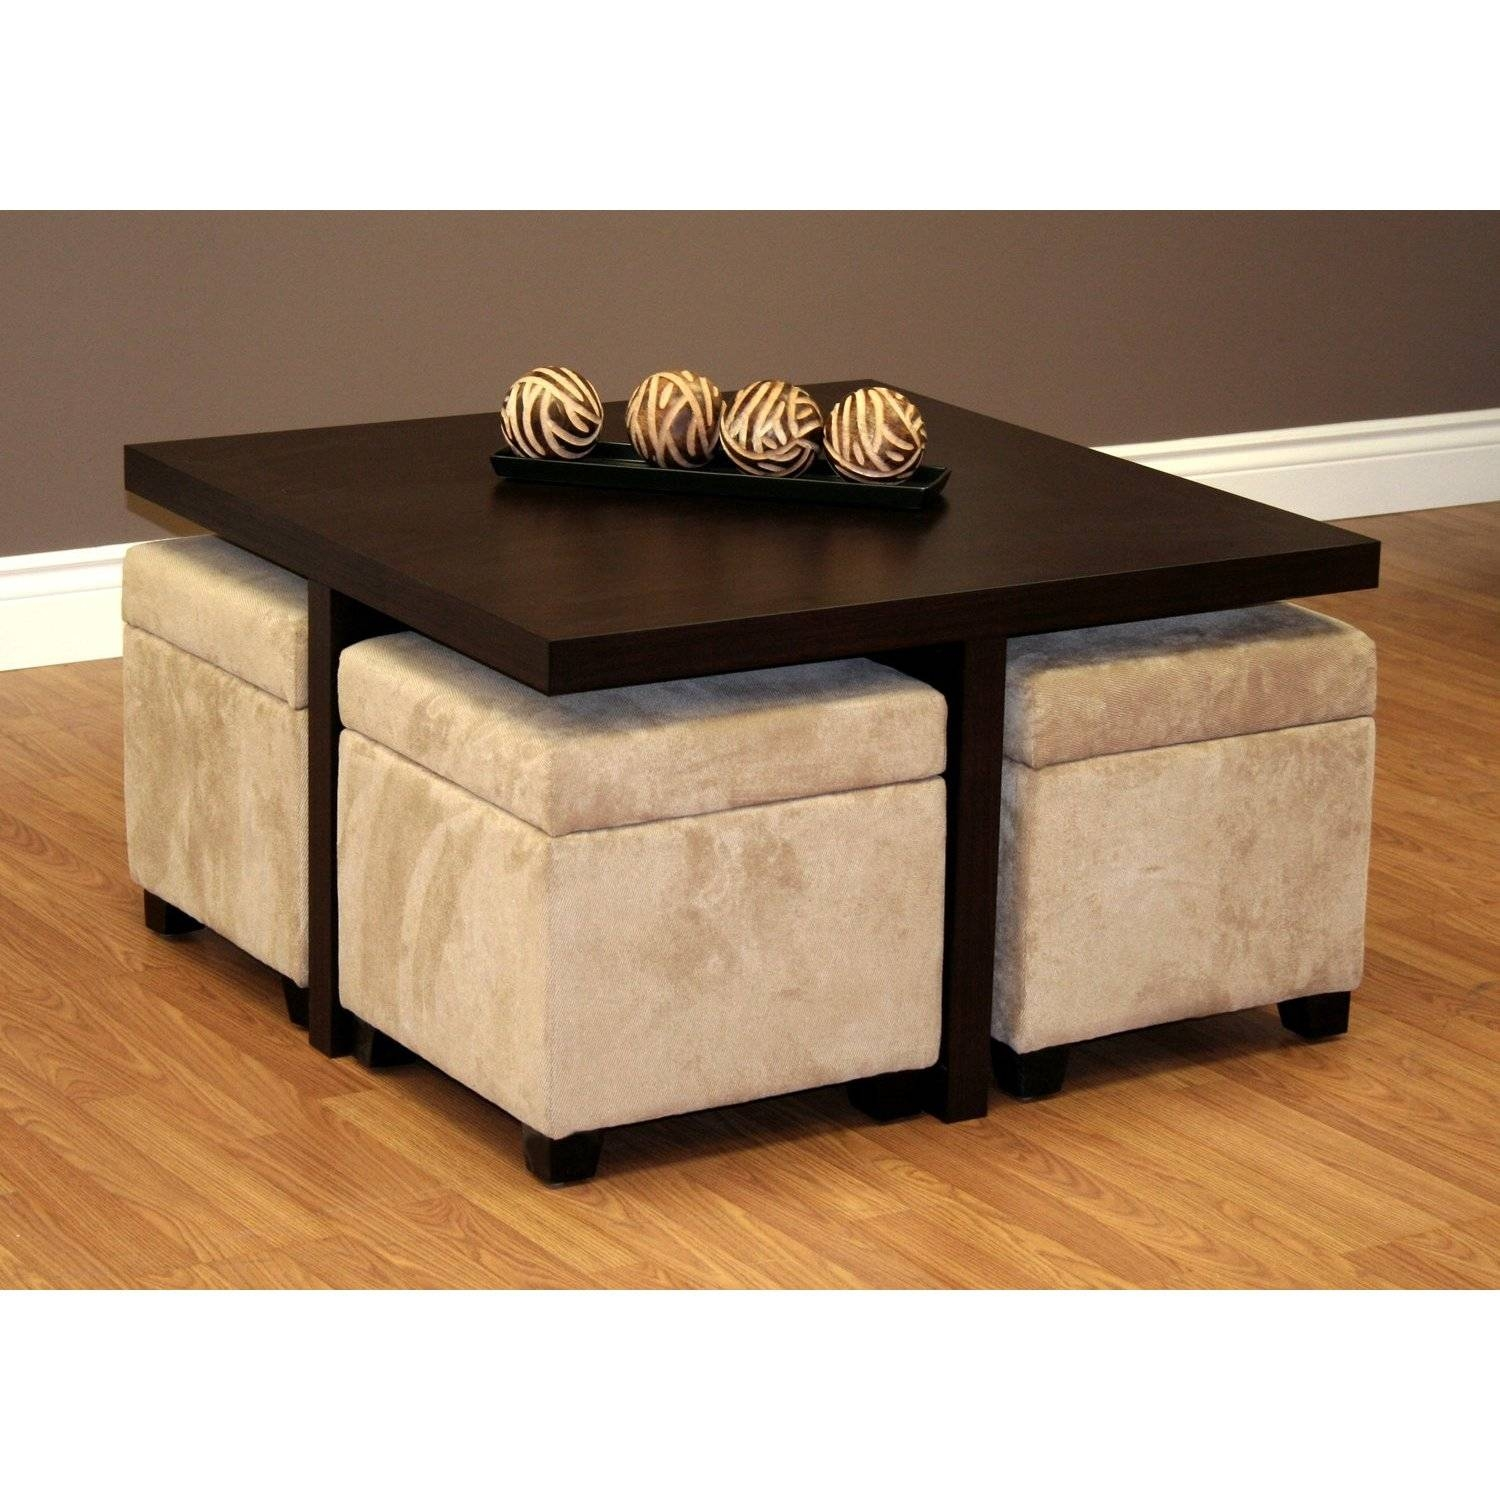 Furniture: Luxury Coffee Table With Stools For Living Room with Coffee Tables With Baskets Underneath (Image 19 of 30)